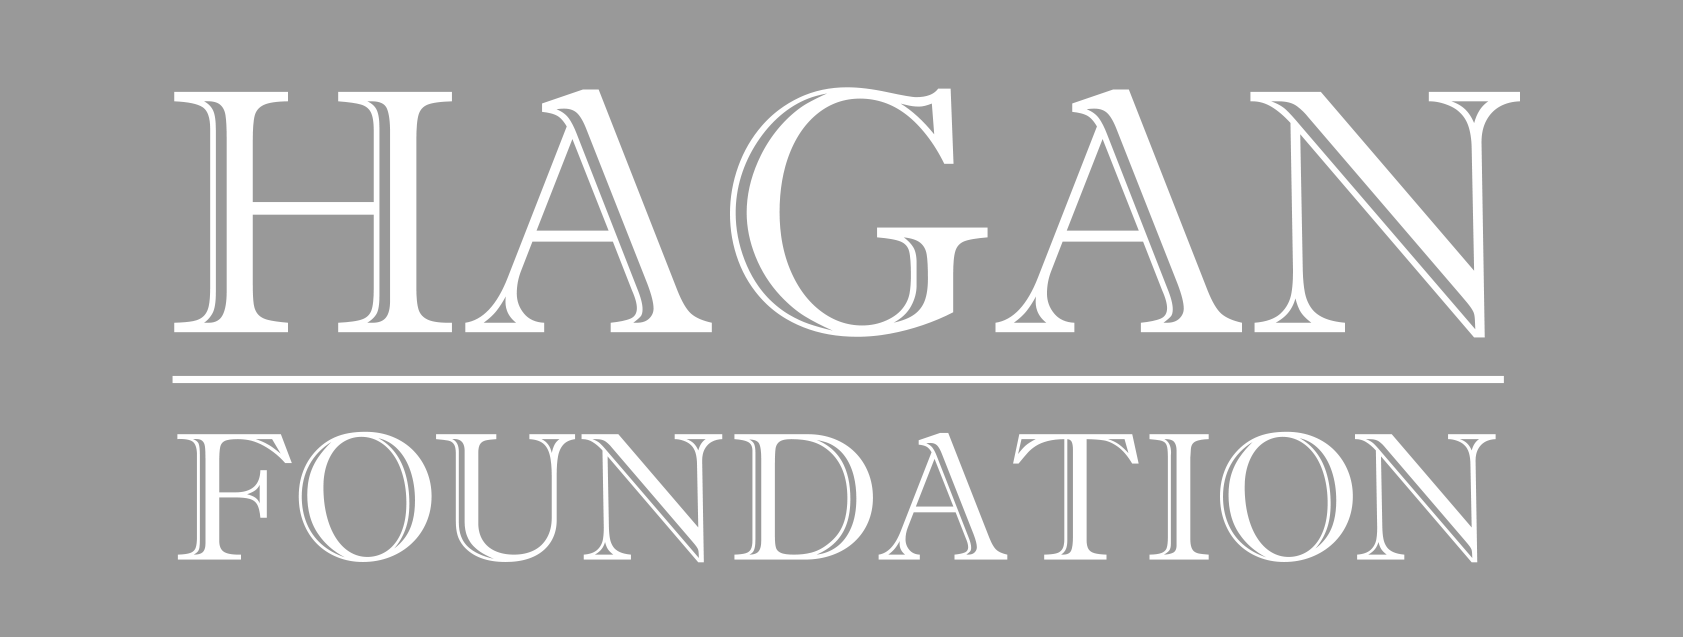 Funder: Hagan Foundation